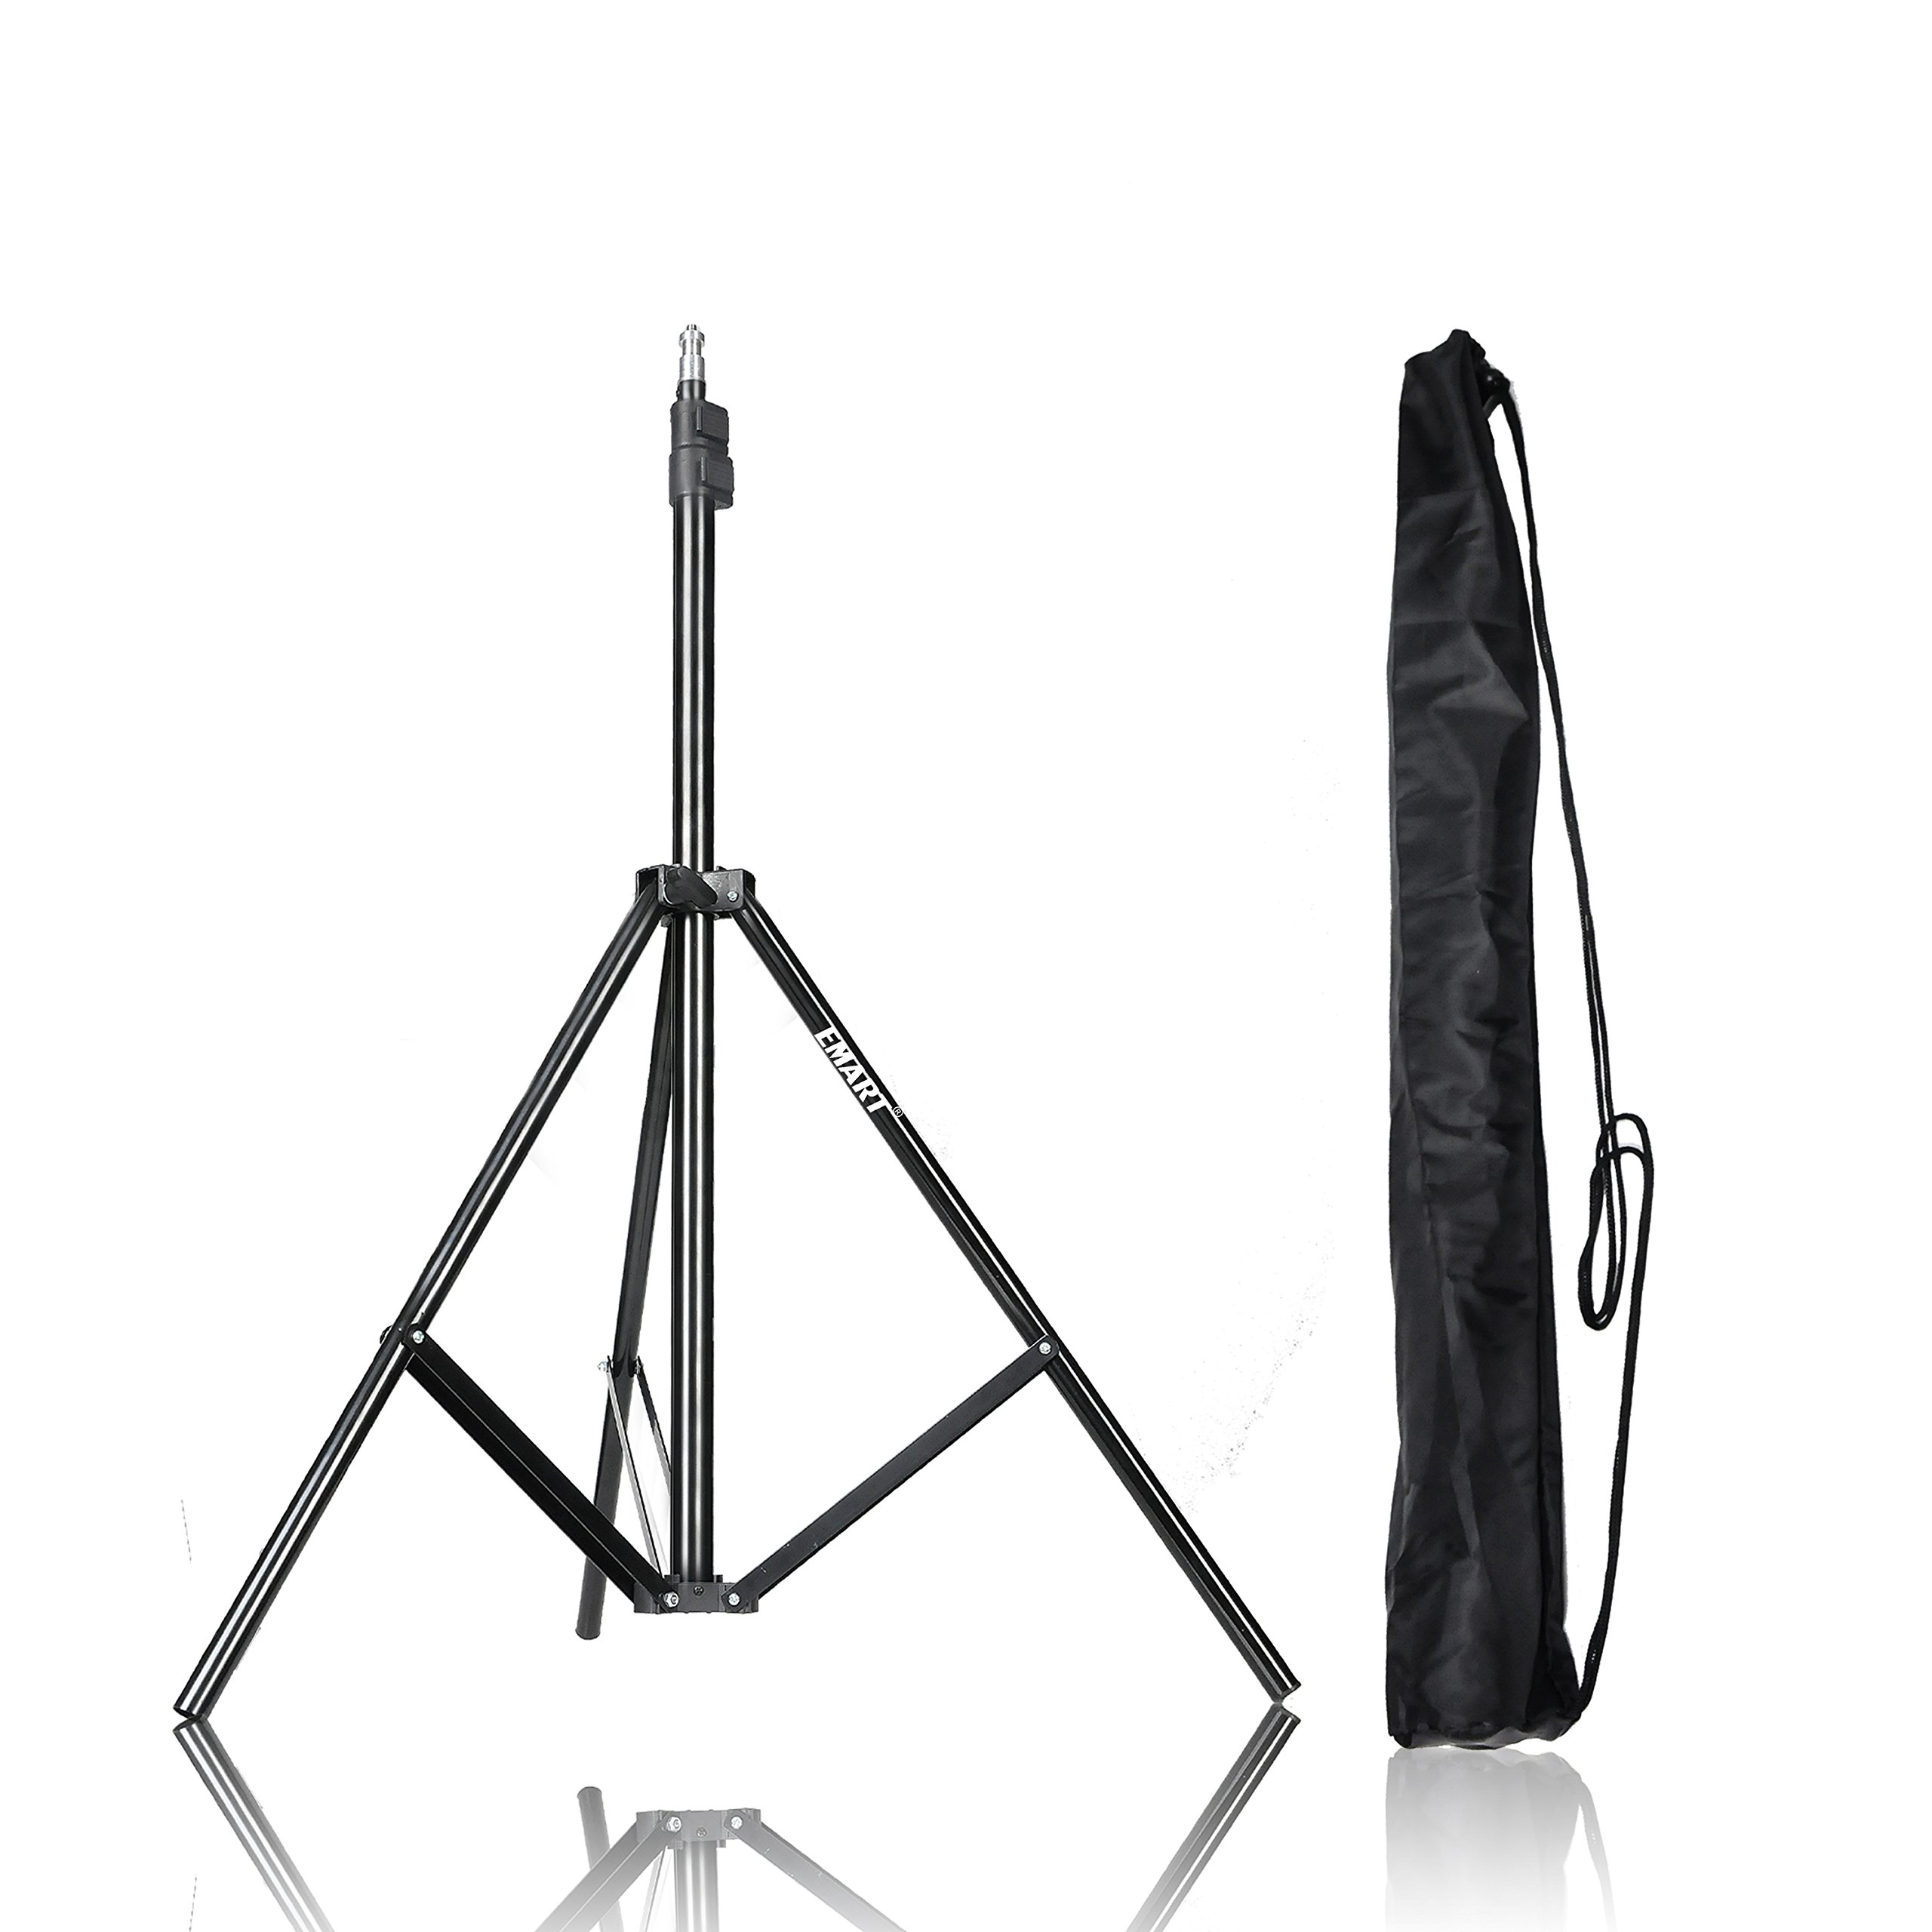 Emart 83 inch/7feet/210cm Photography Photo Studio Light Stand for Video Lighting, Softbox, Umbrella, Ring Light, Camera, Flash, Carry Case Include